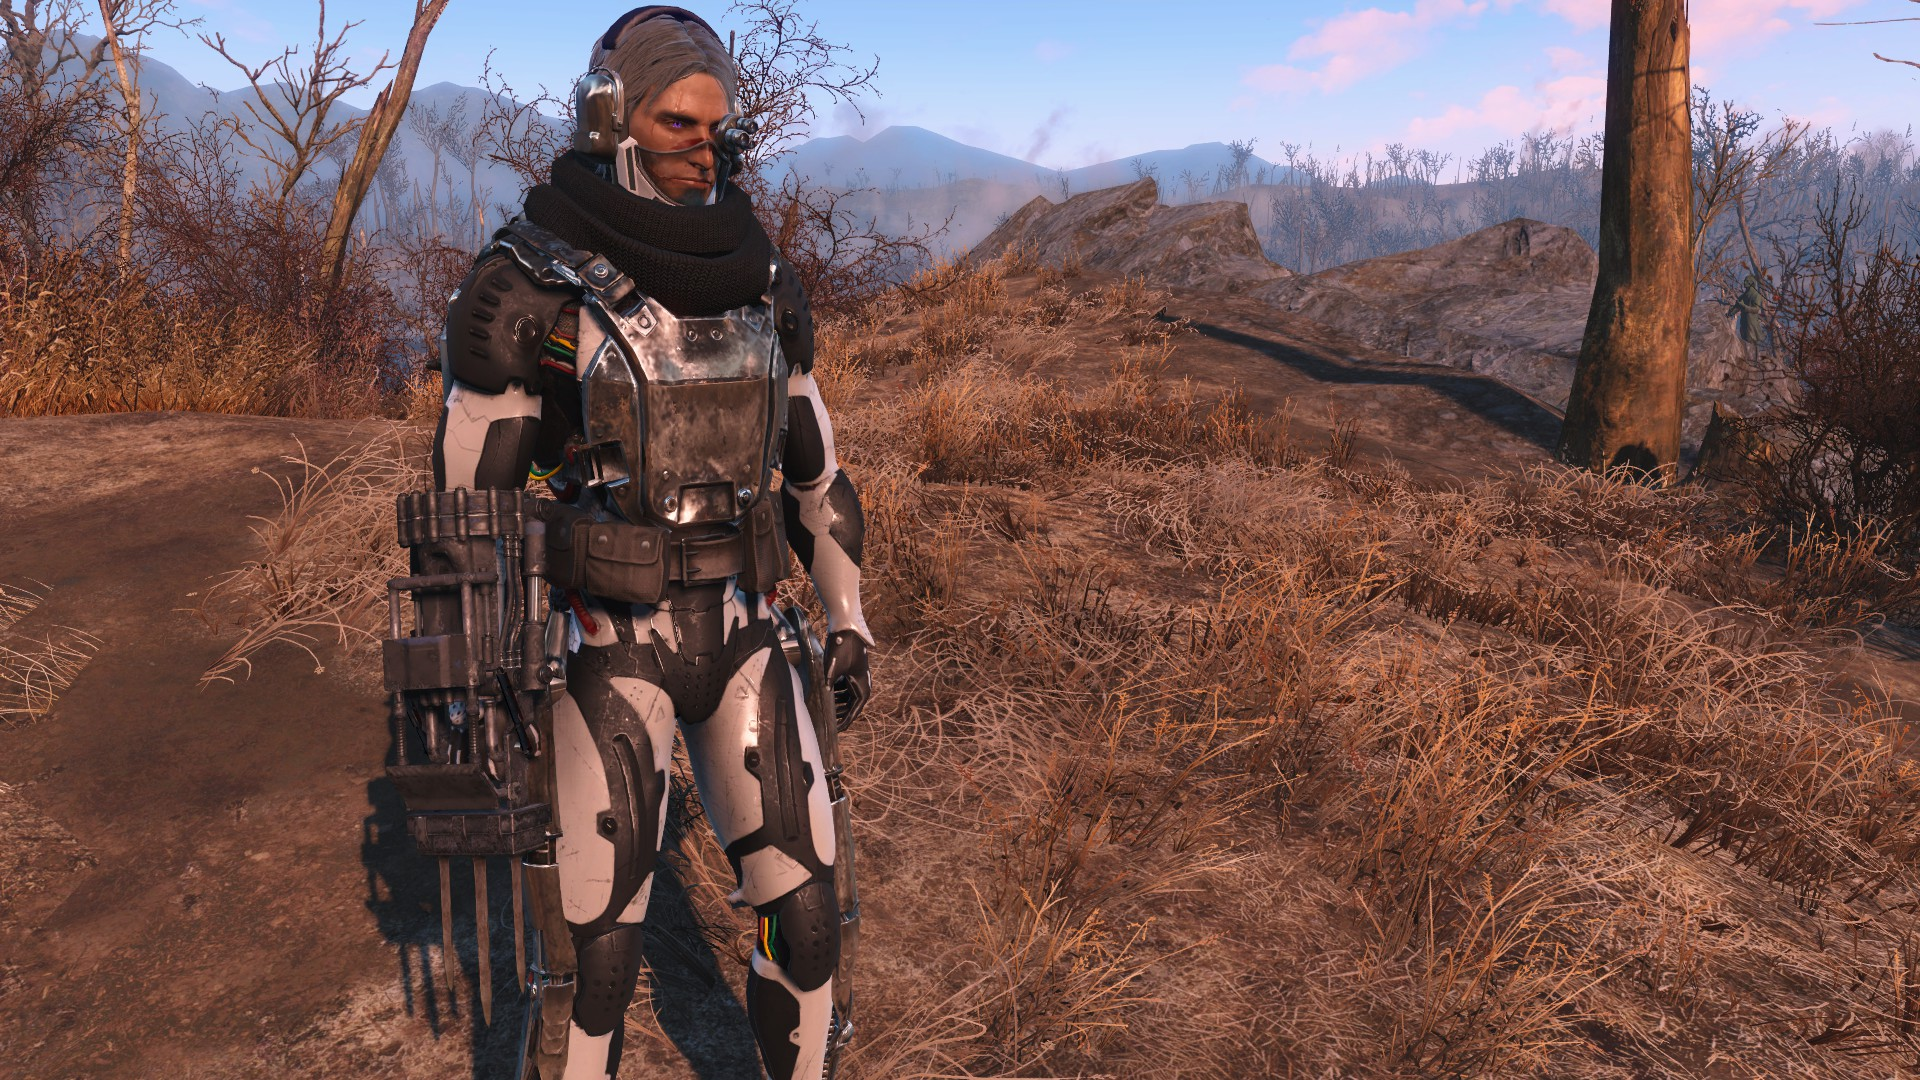 FO4] Does anyone know what mod this robotic armor is from